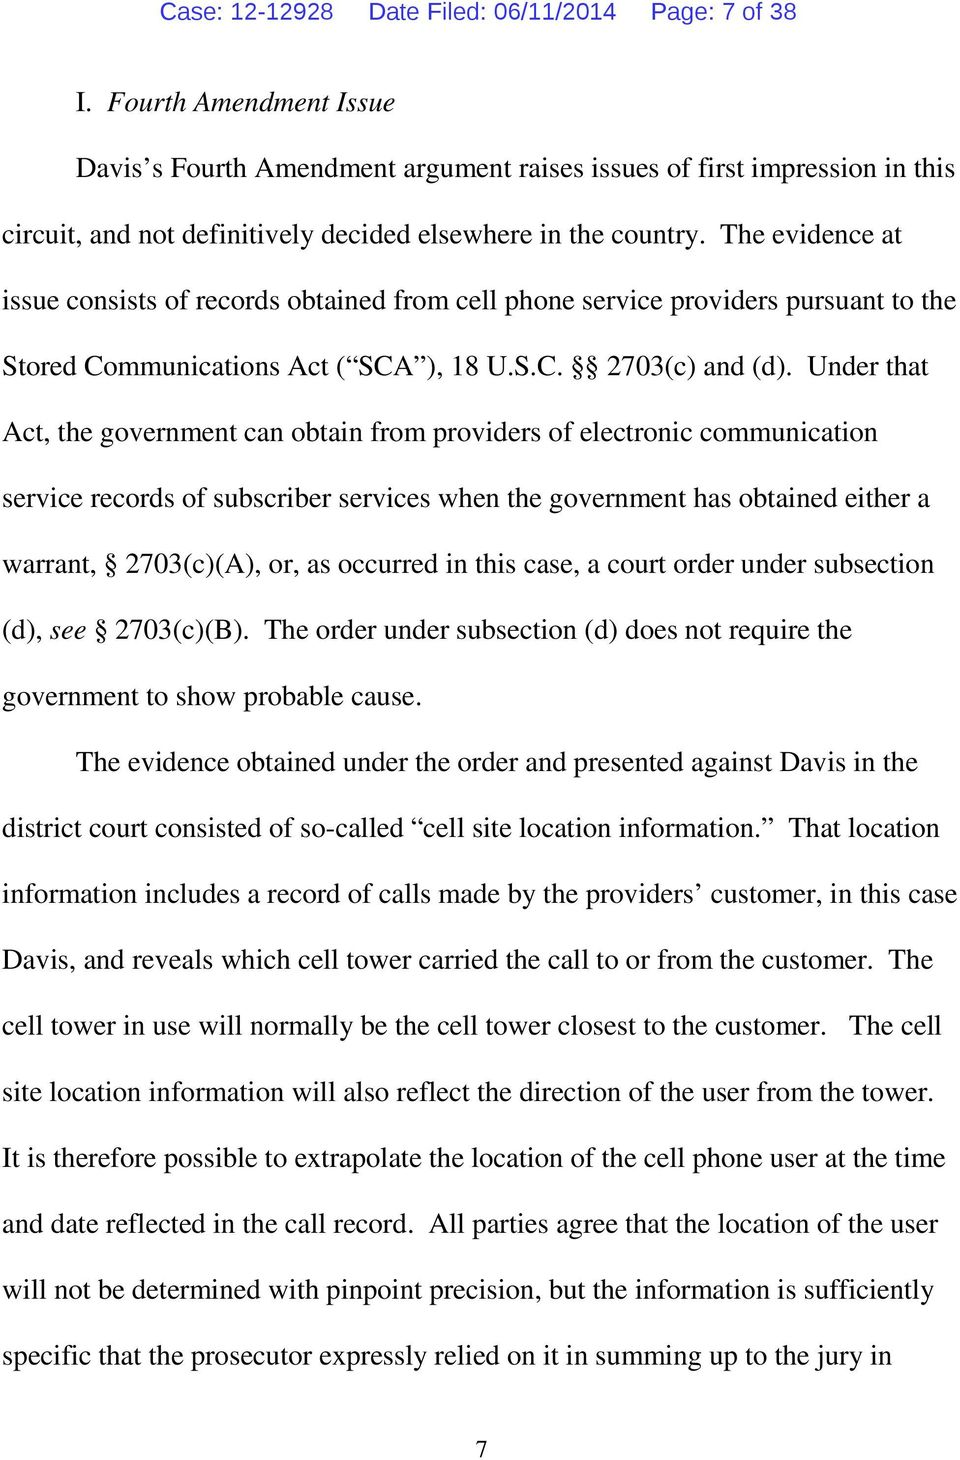 The evidence at issue consists of records obtained from cell phone service providers pursuant to the Stored Communications Act ( SCA ), 18 U.S.C. 2703(c) and (d).